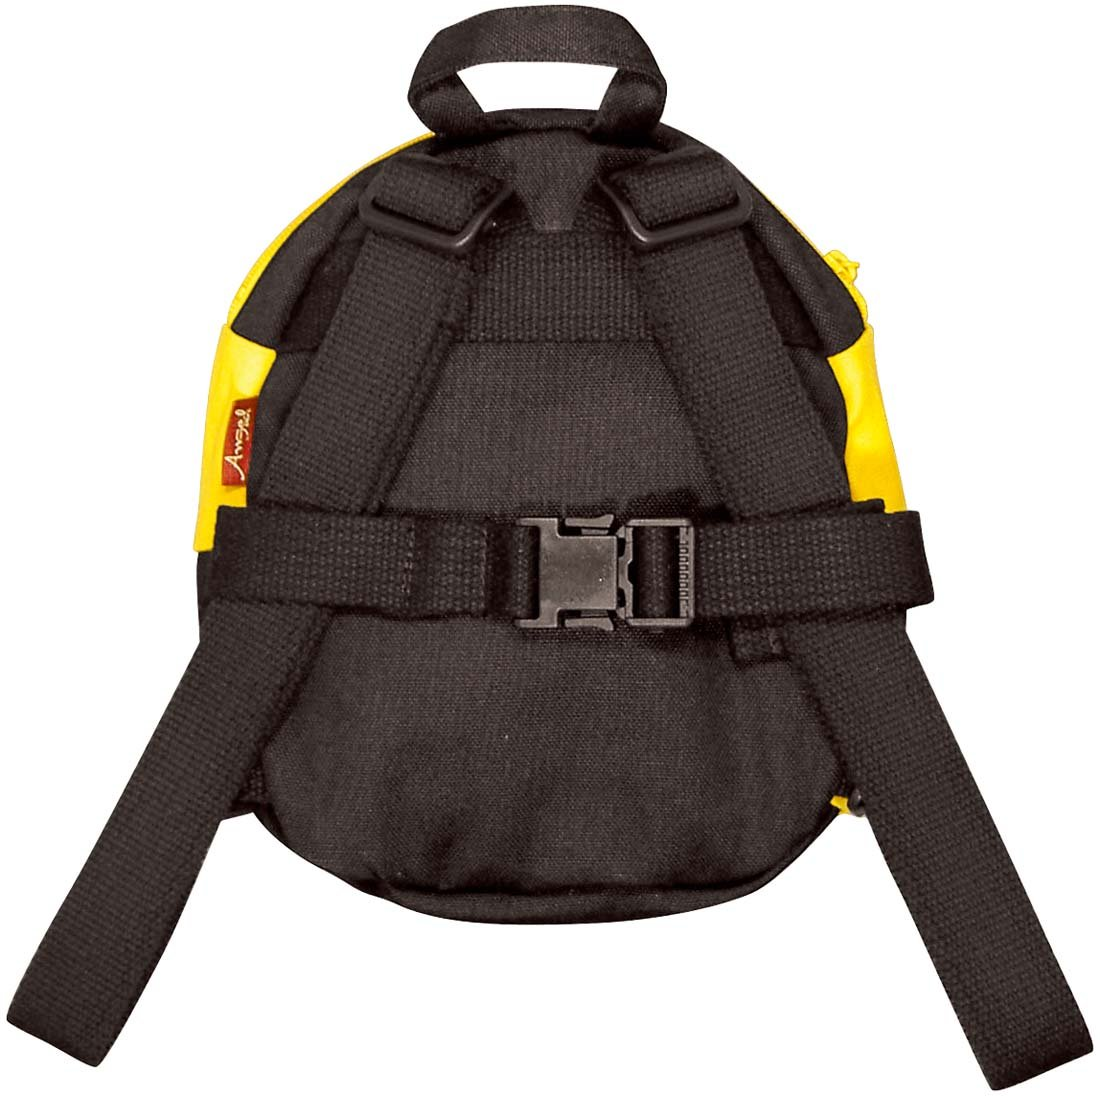 Angel DEPT Baby Boys Girls Toddler Safety Harness Backpack (Yellow bee) by Angel DEPT (Image #3)